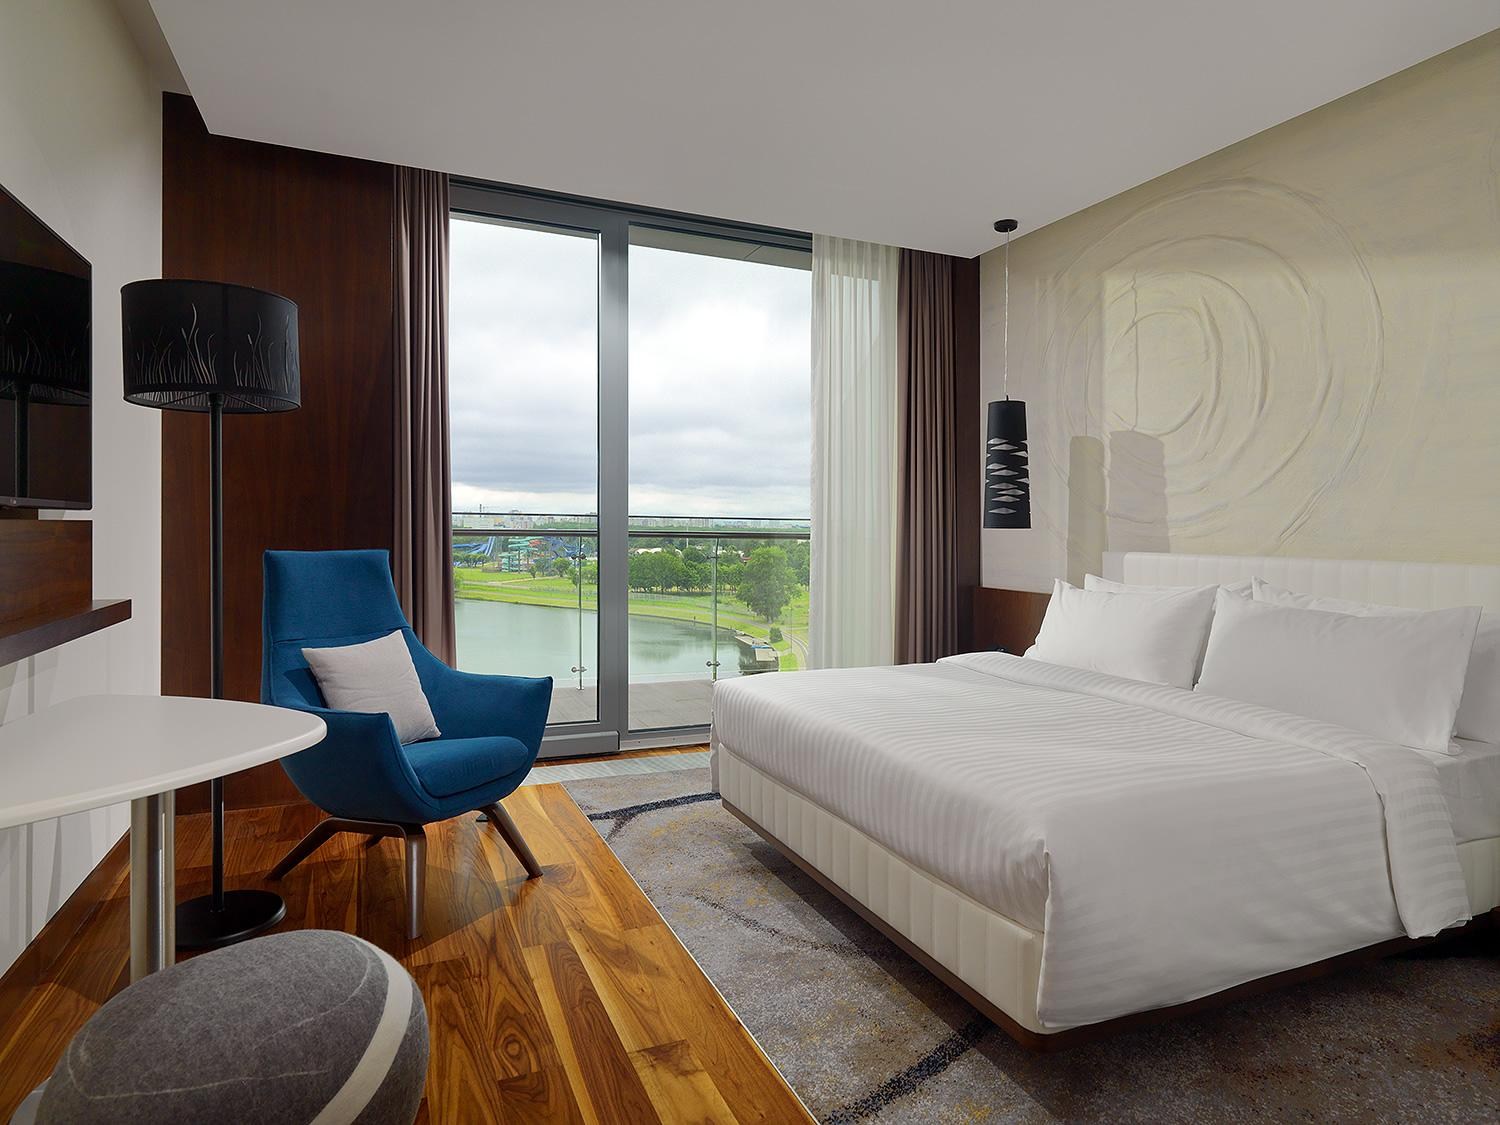 Classic Riverside View, Guest room, 1 King or 2 Queen